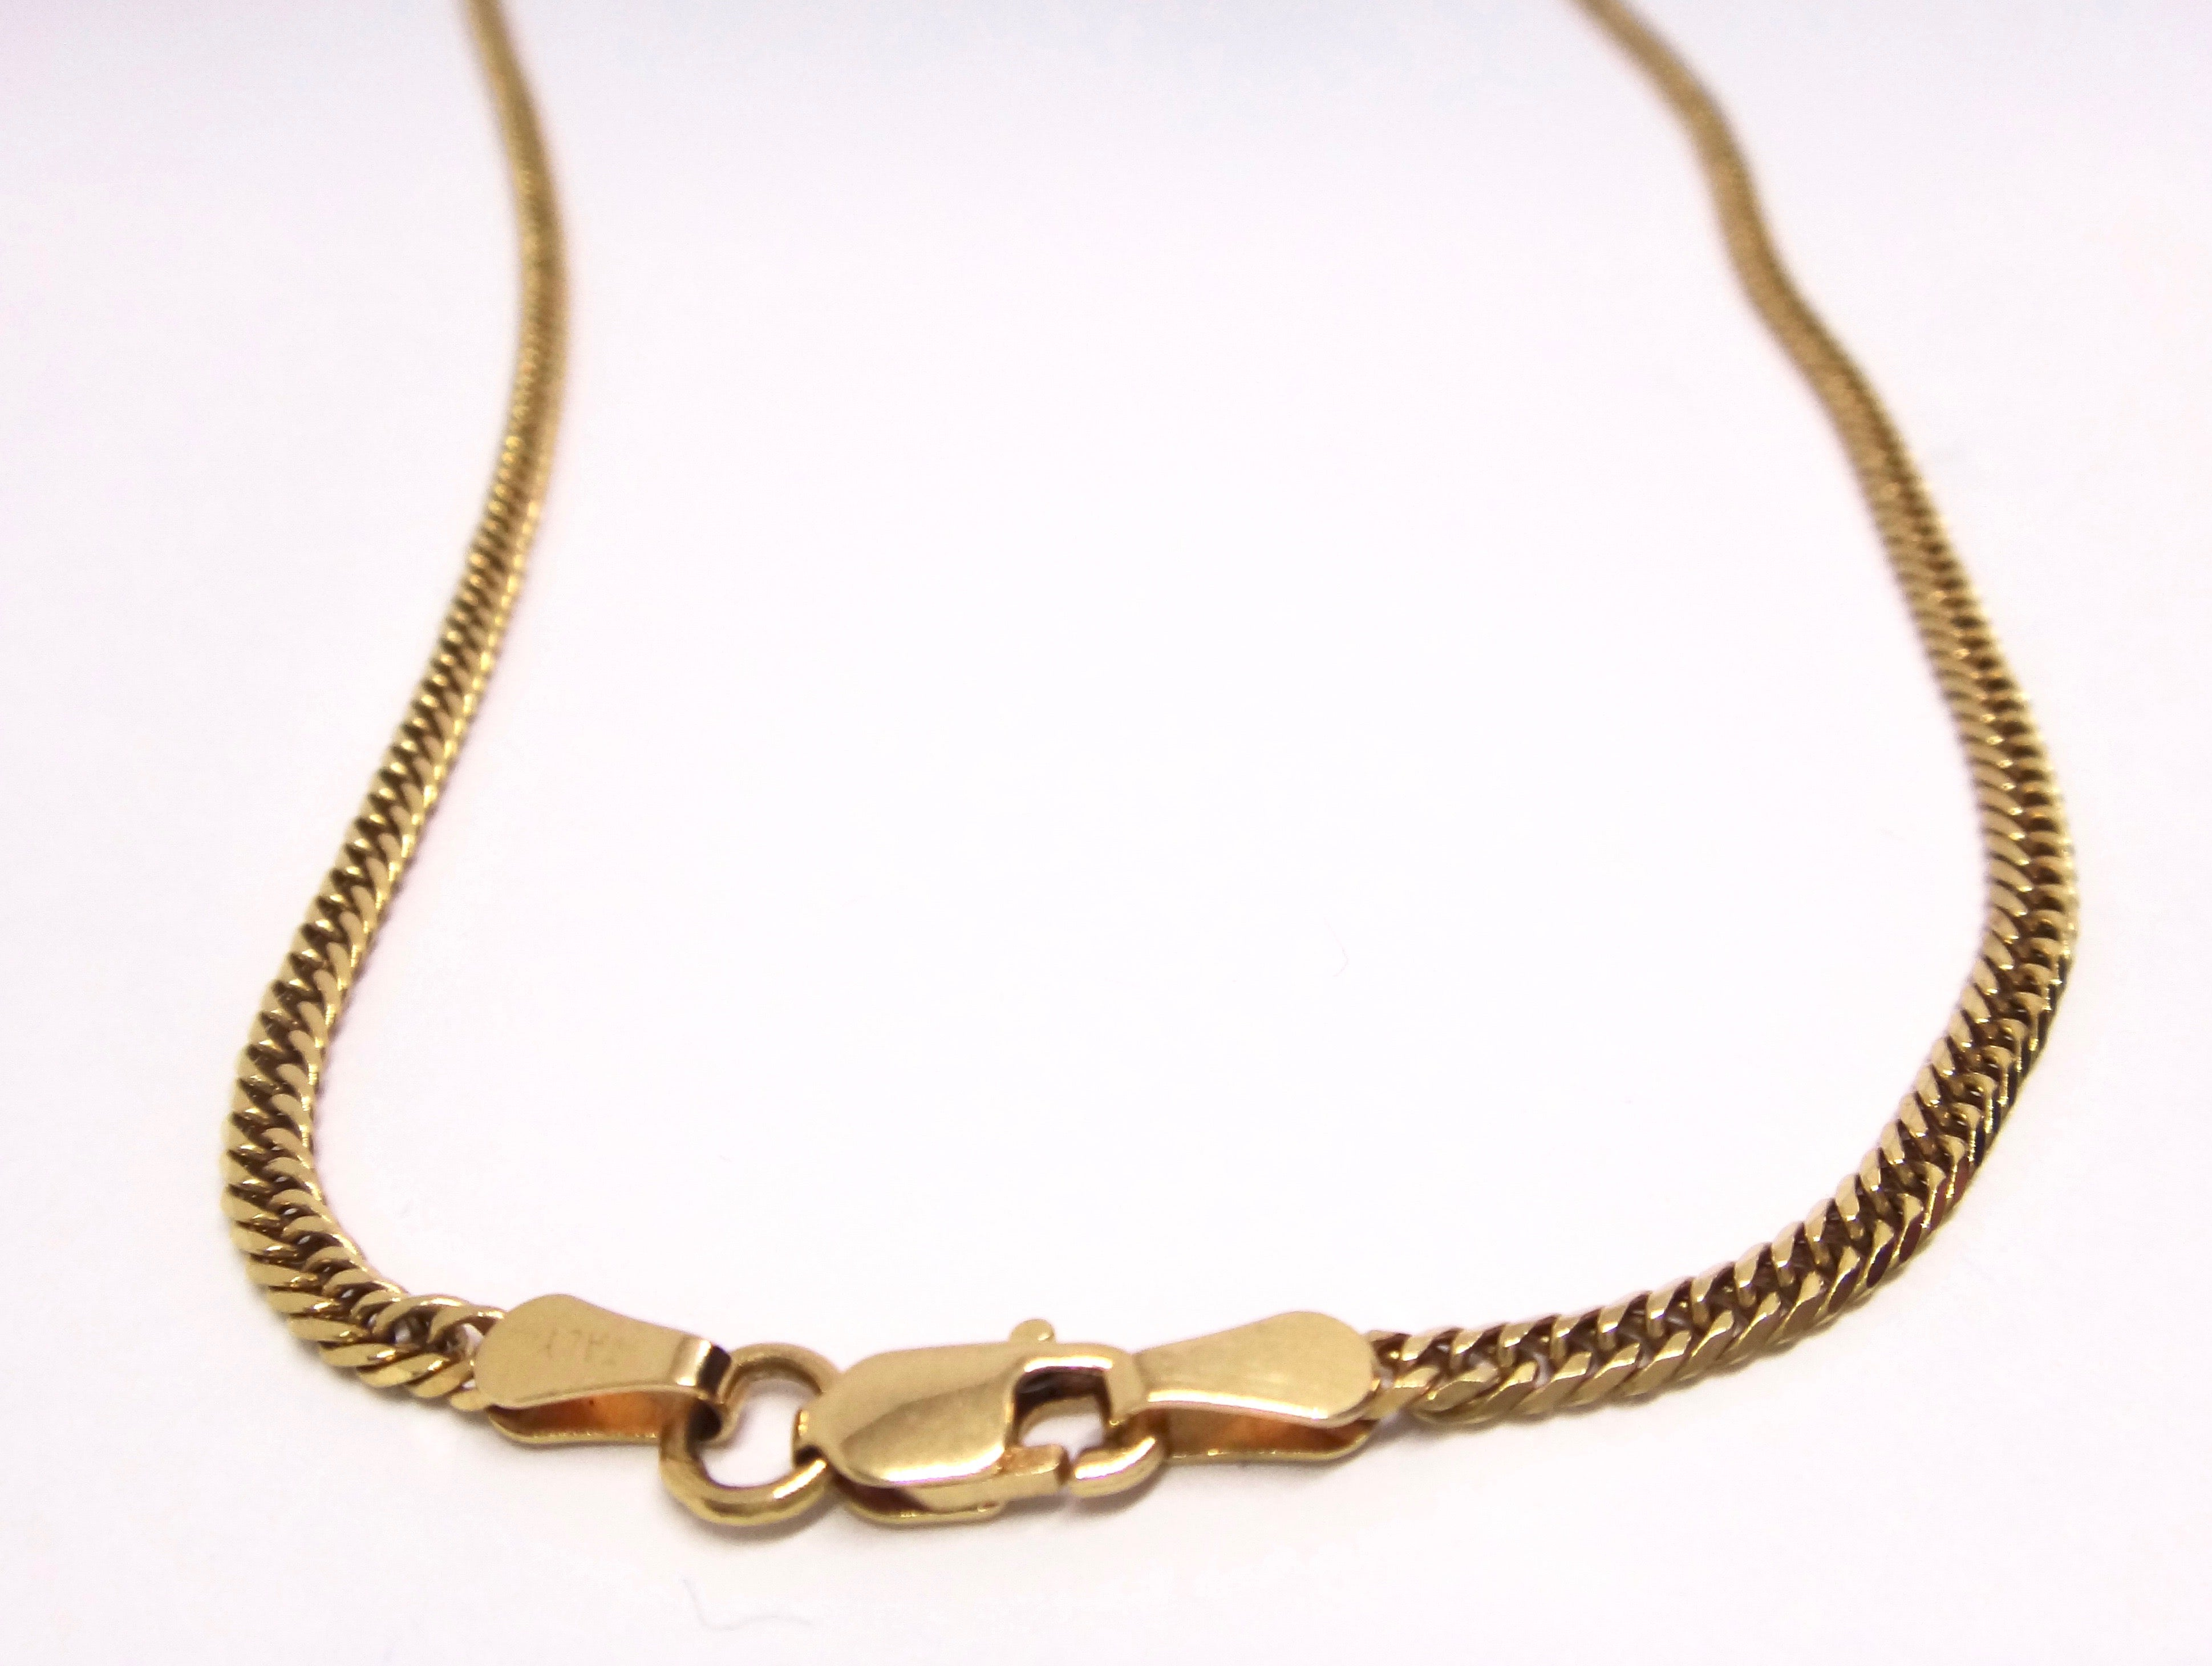 18CT Yellow GOLD Curb Link Style Chain Necklace